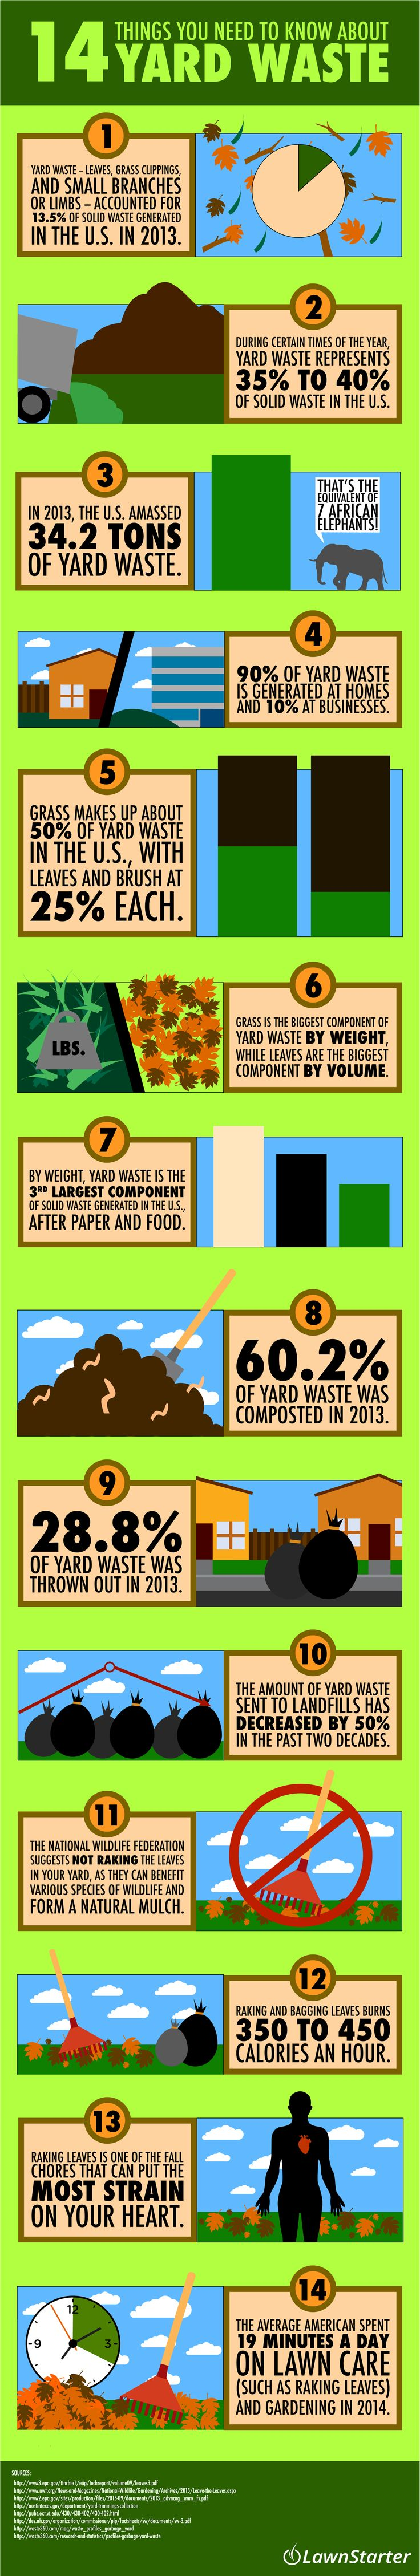 14 Things You Need to Know About Yard Waste